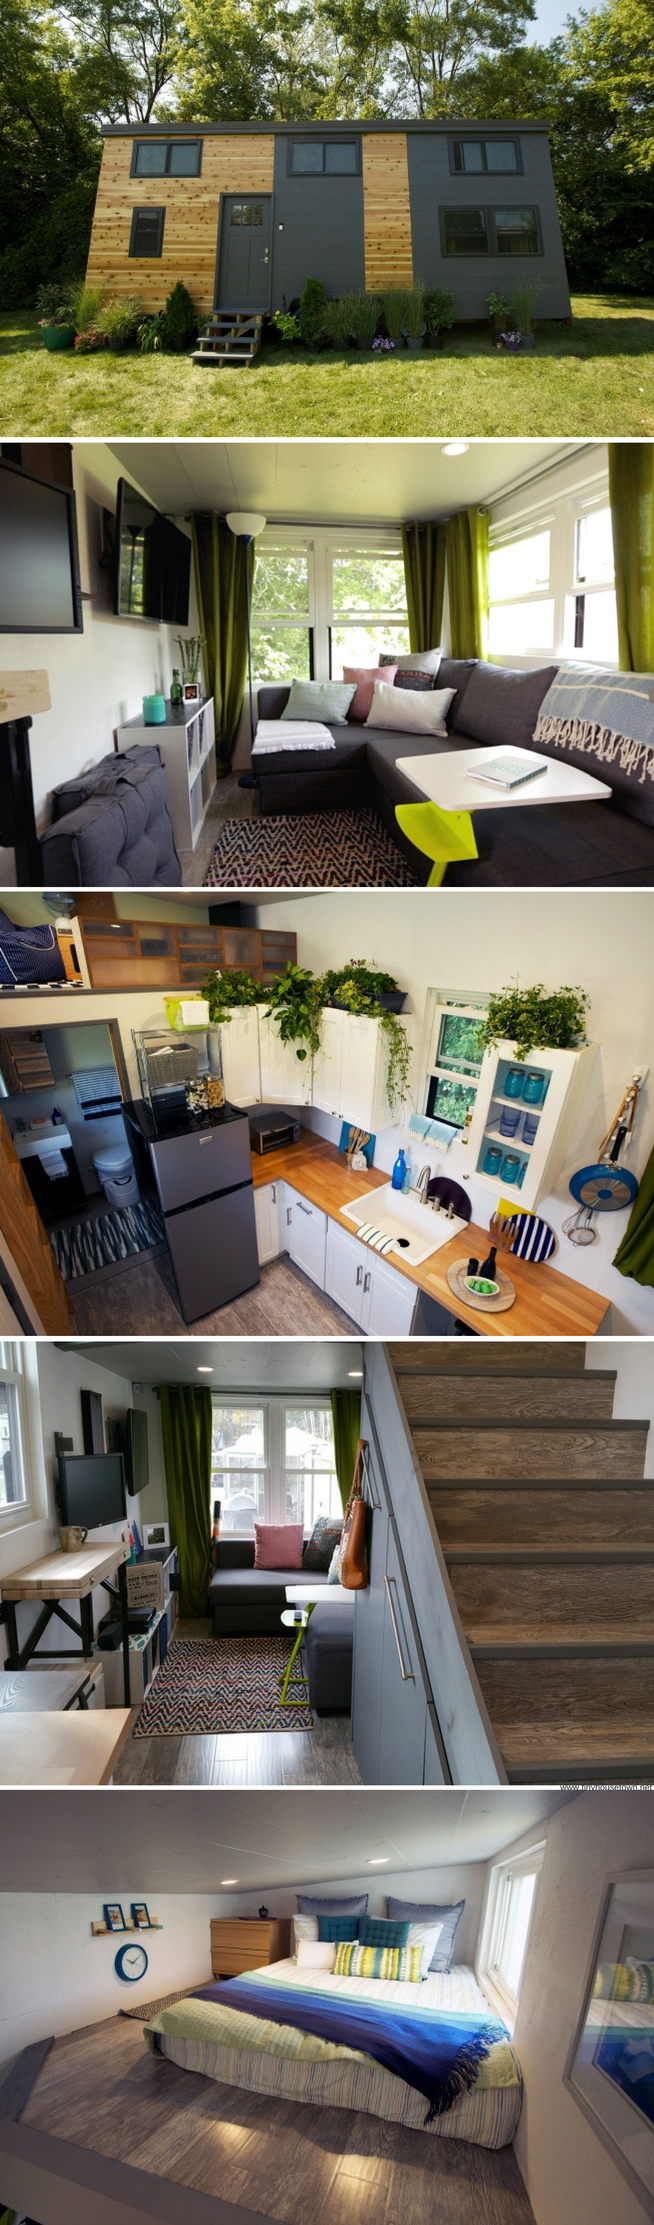 The Smart House: a 303 sq ft tiny home that was featured on Tiny ...